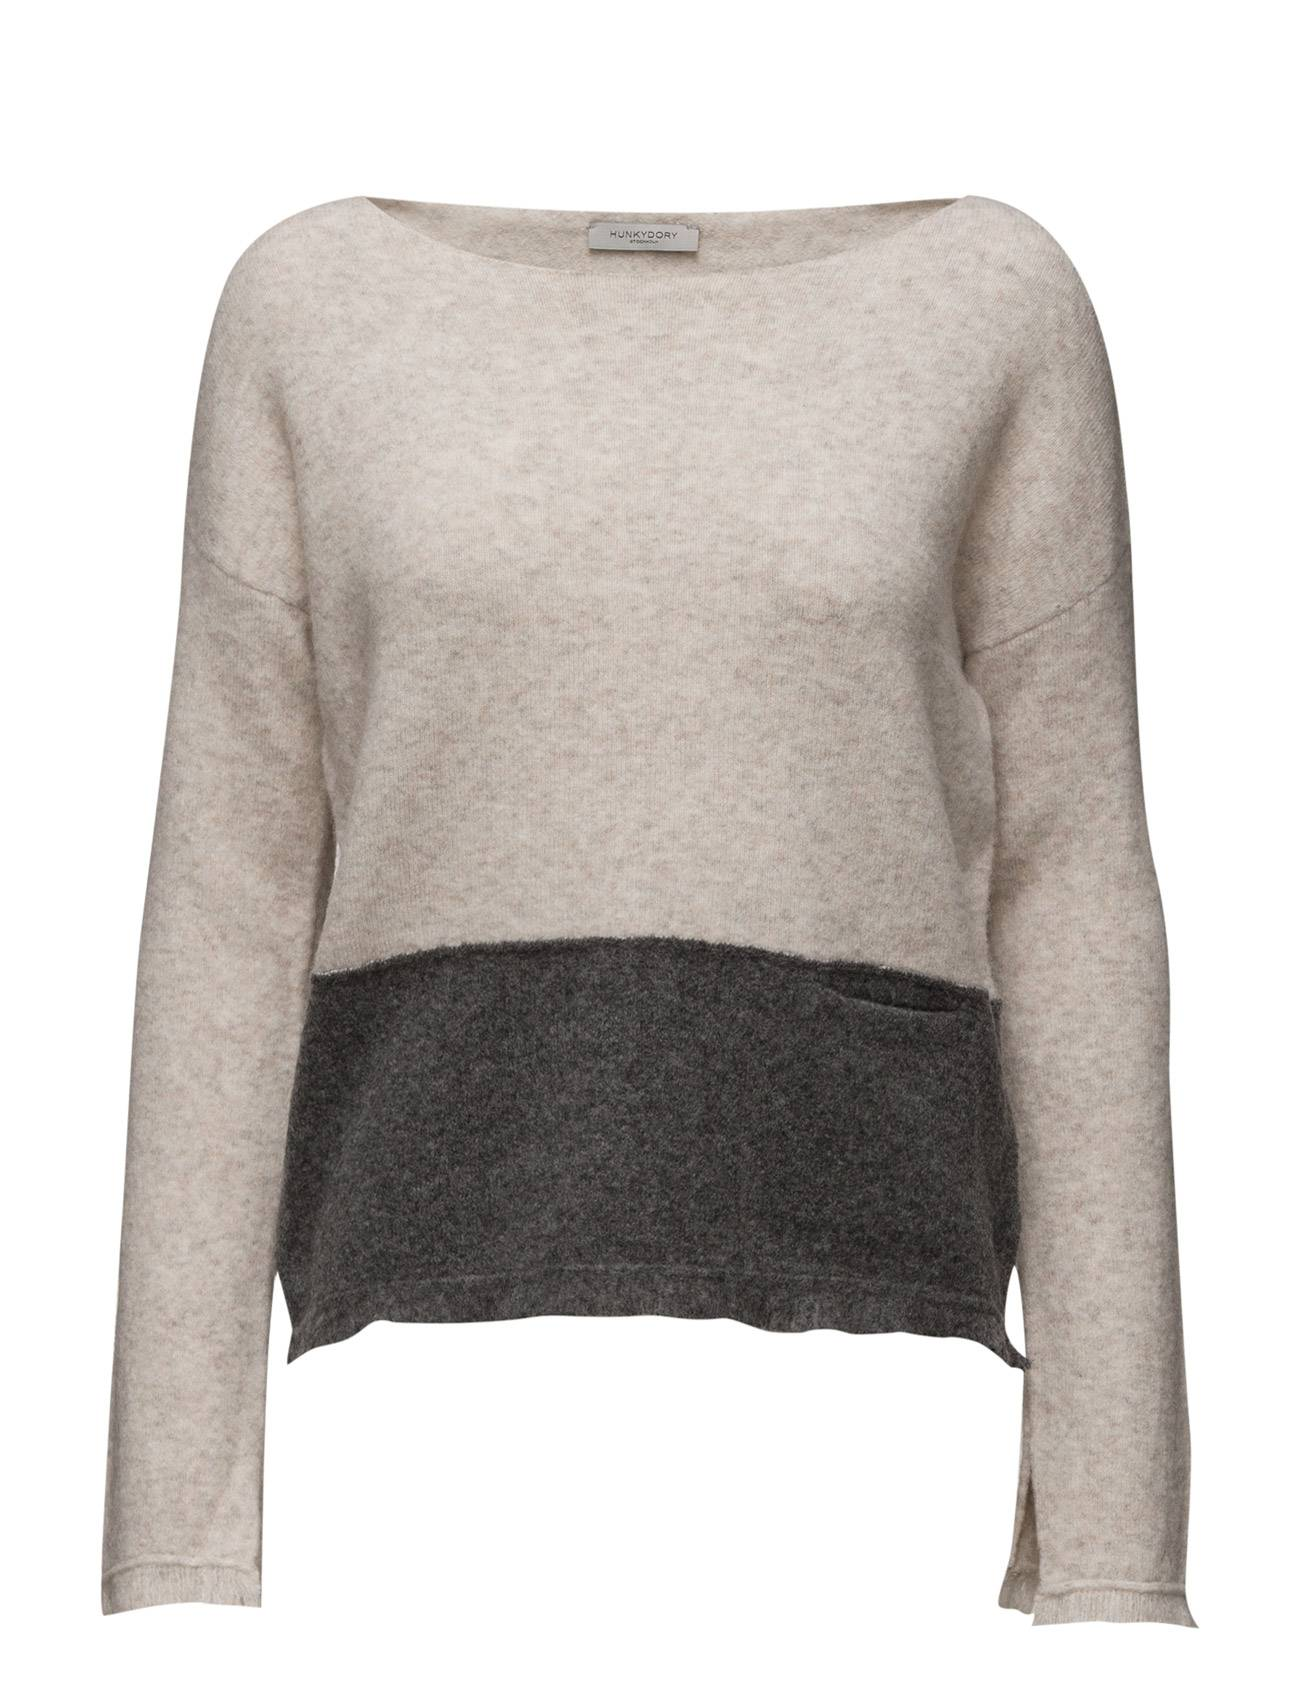 Hunkydory Foster Knit